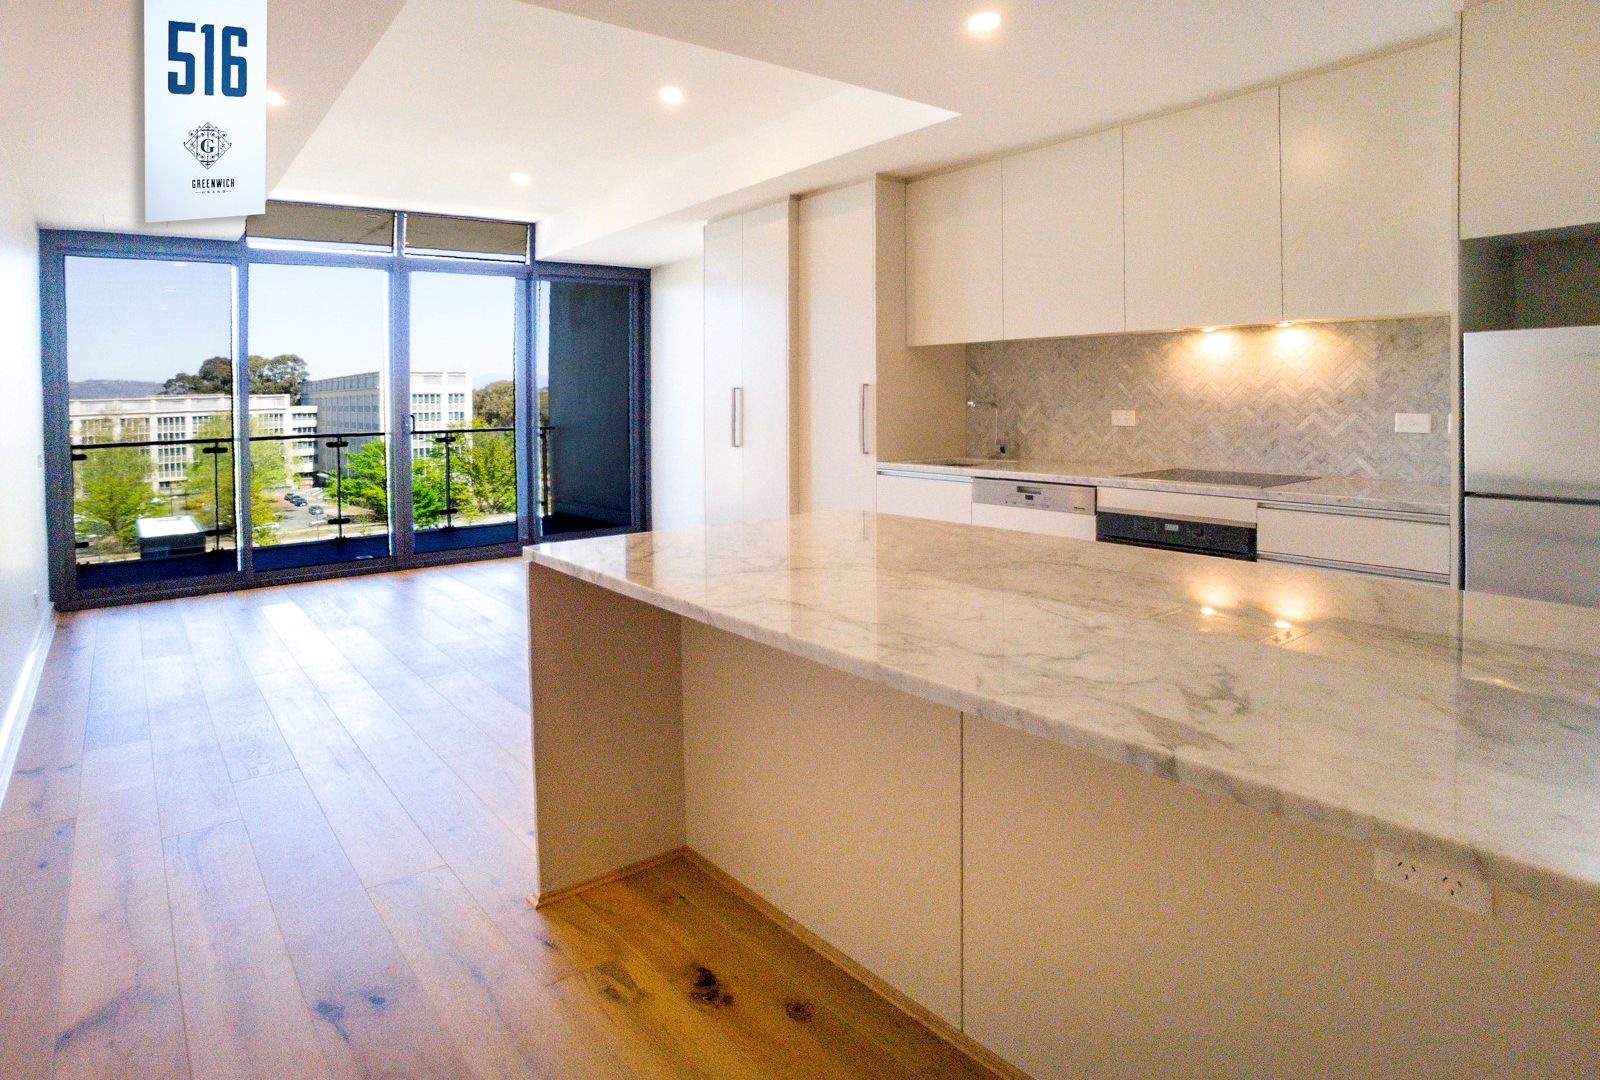 516/12 Provan Street, Campbell ACT 2612, Image 1